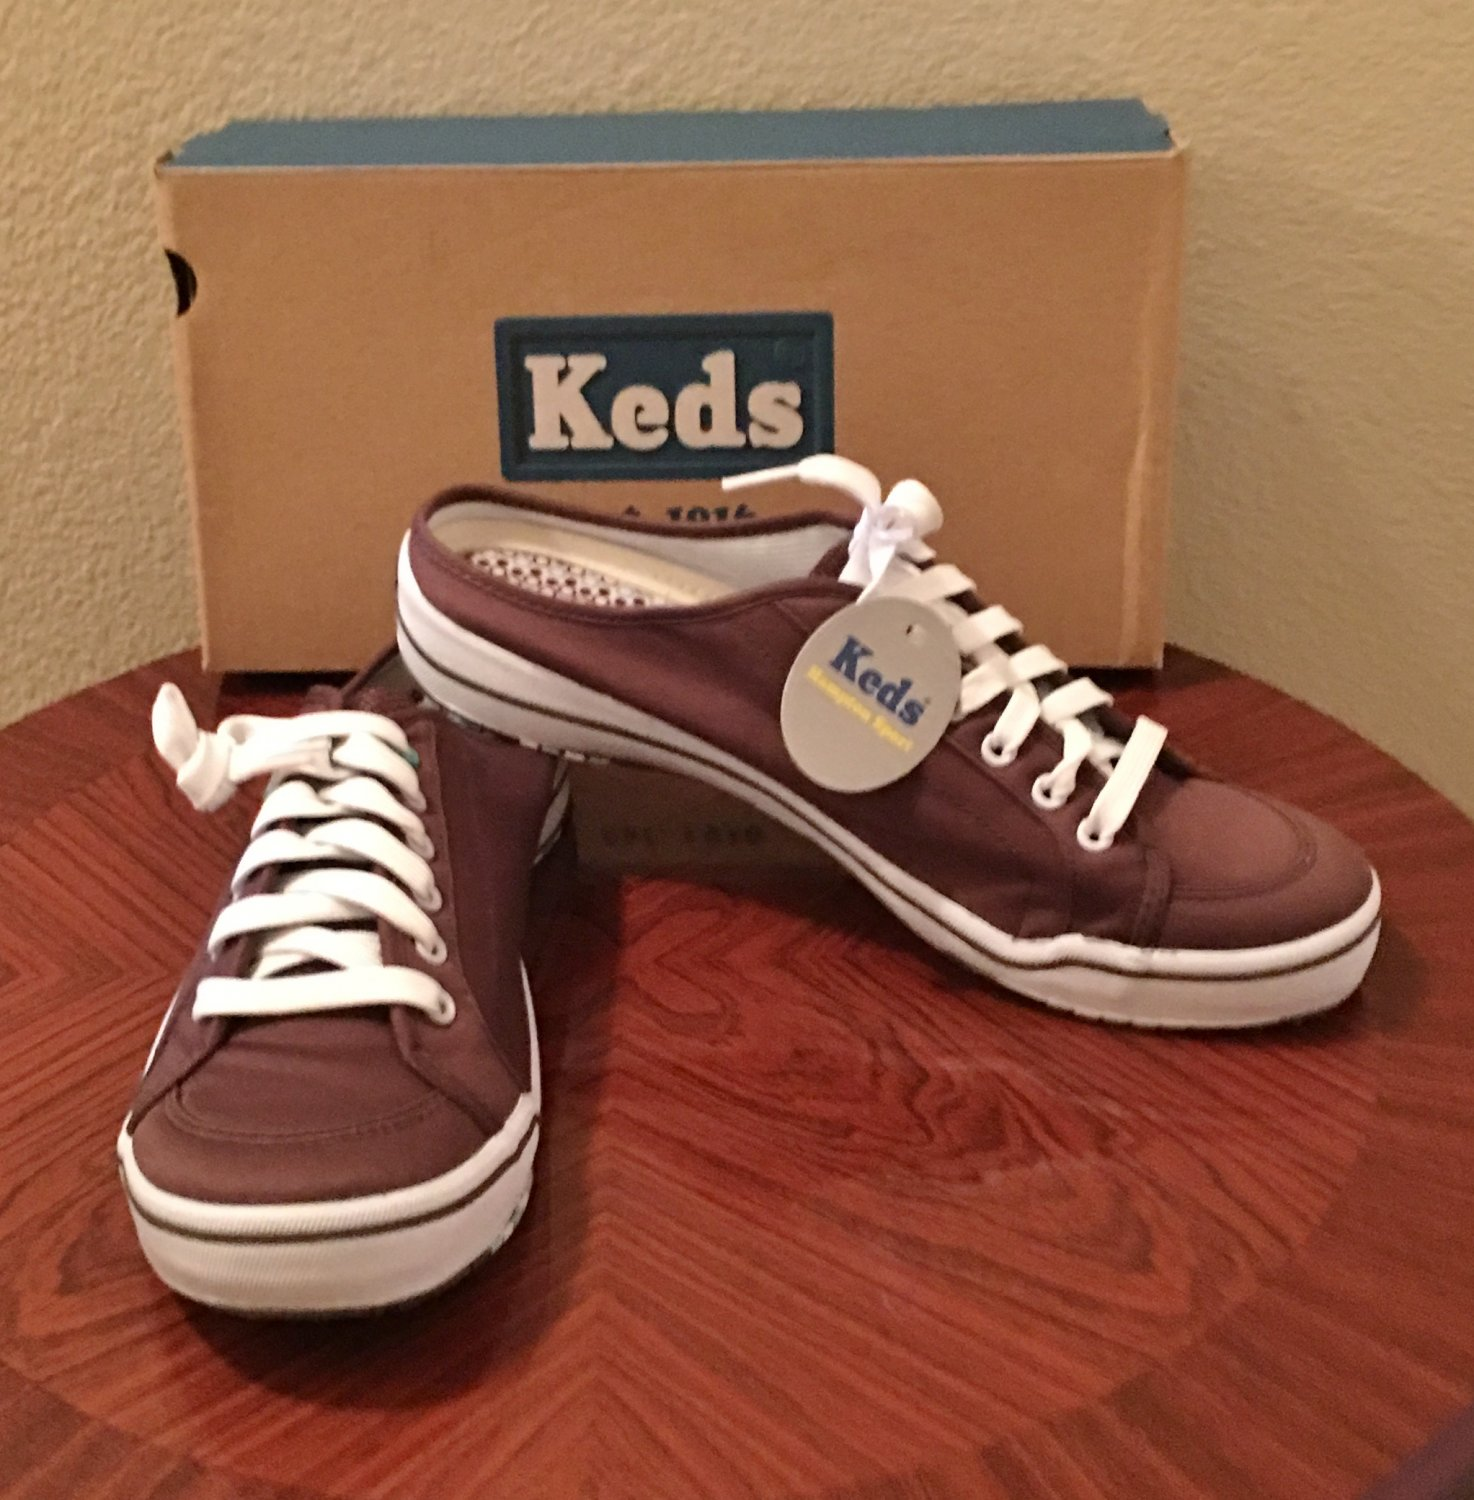 What Stores Sell Keds Shoes